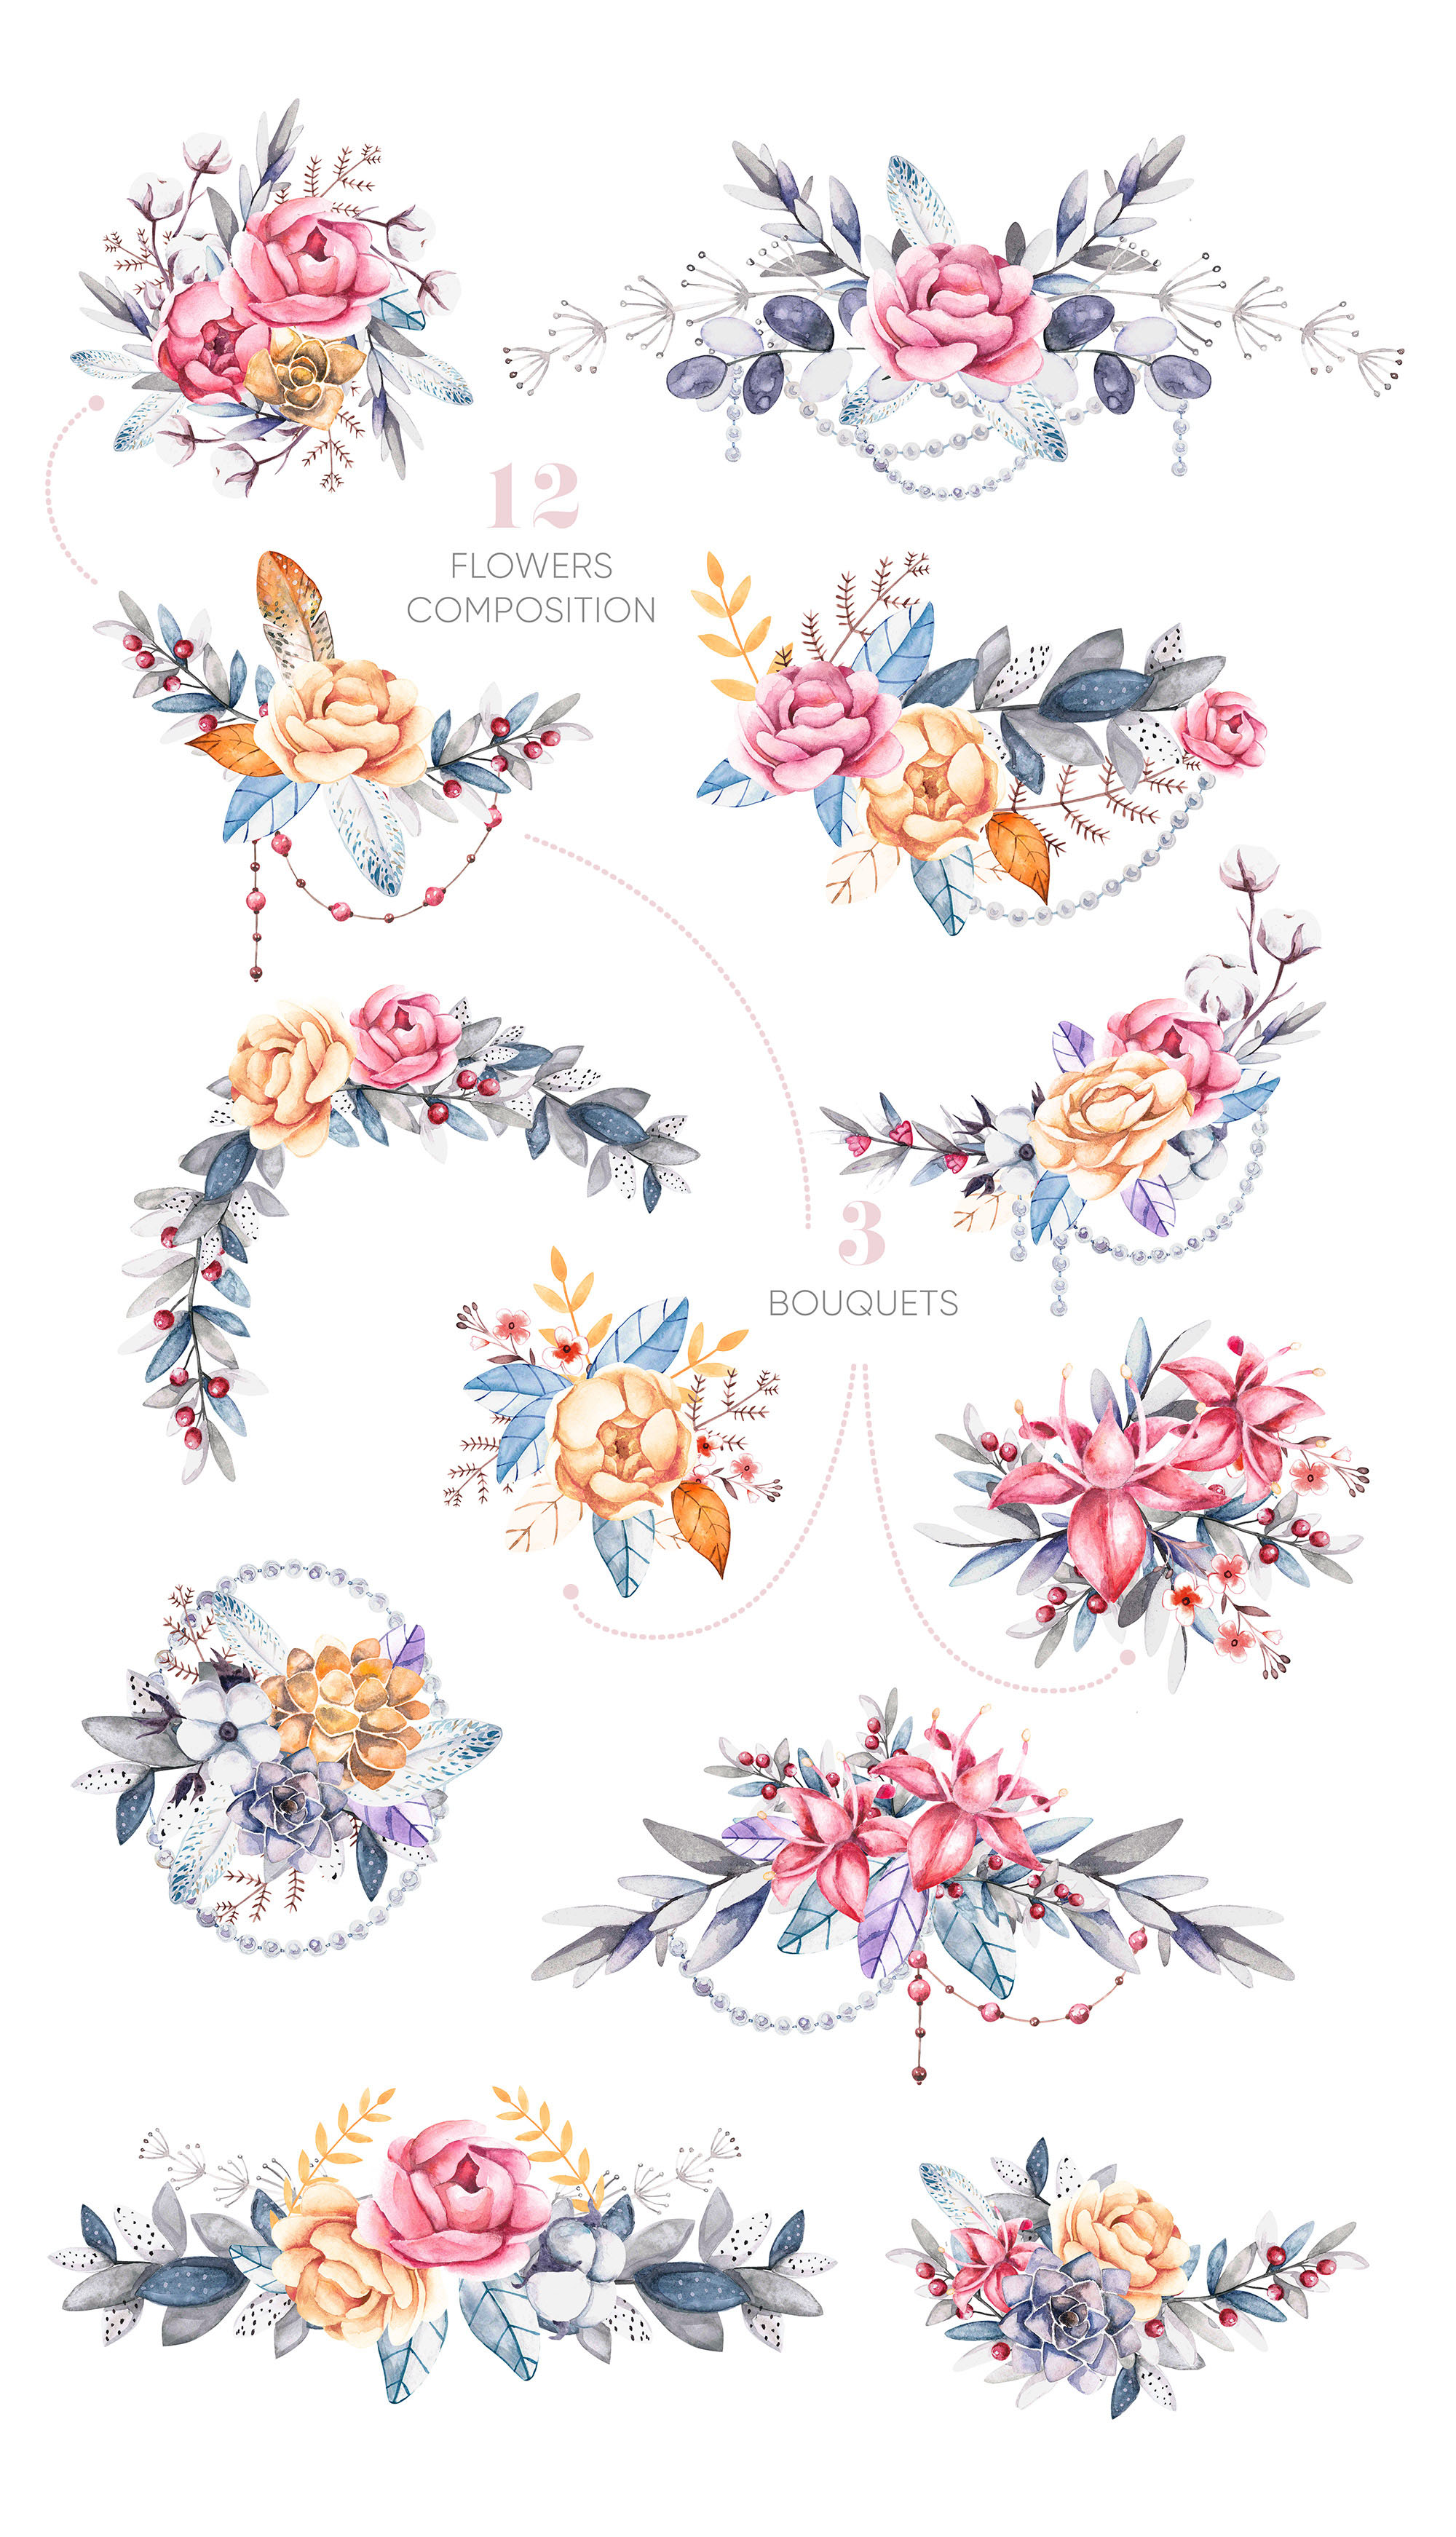 watercolor floral clipart elements and compositions